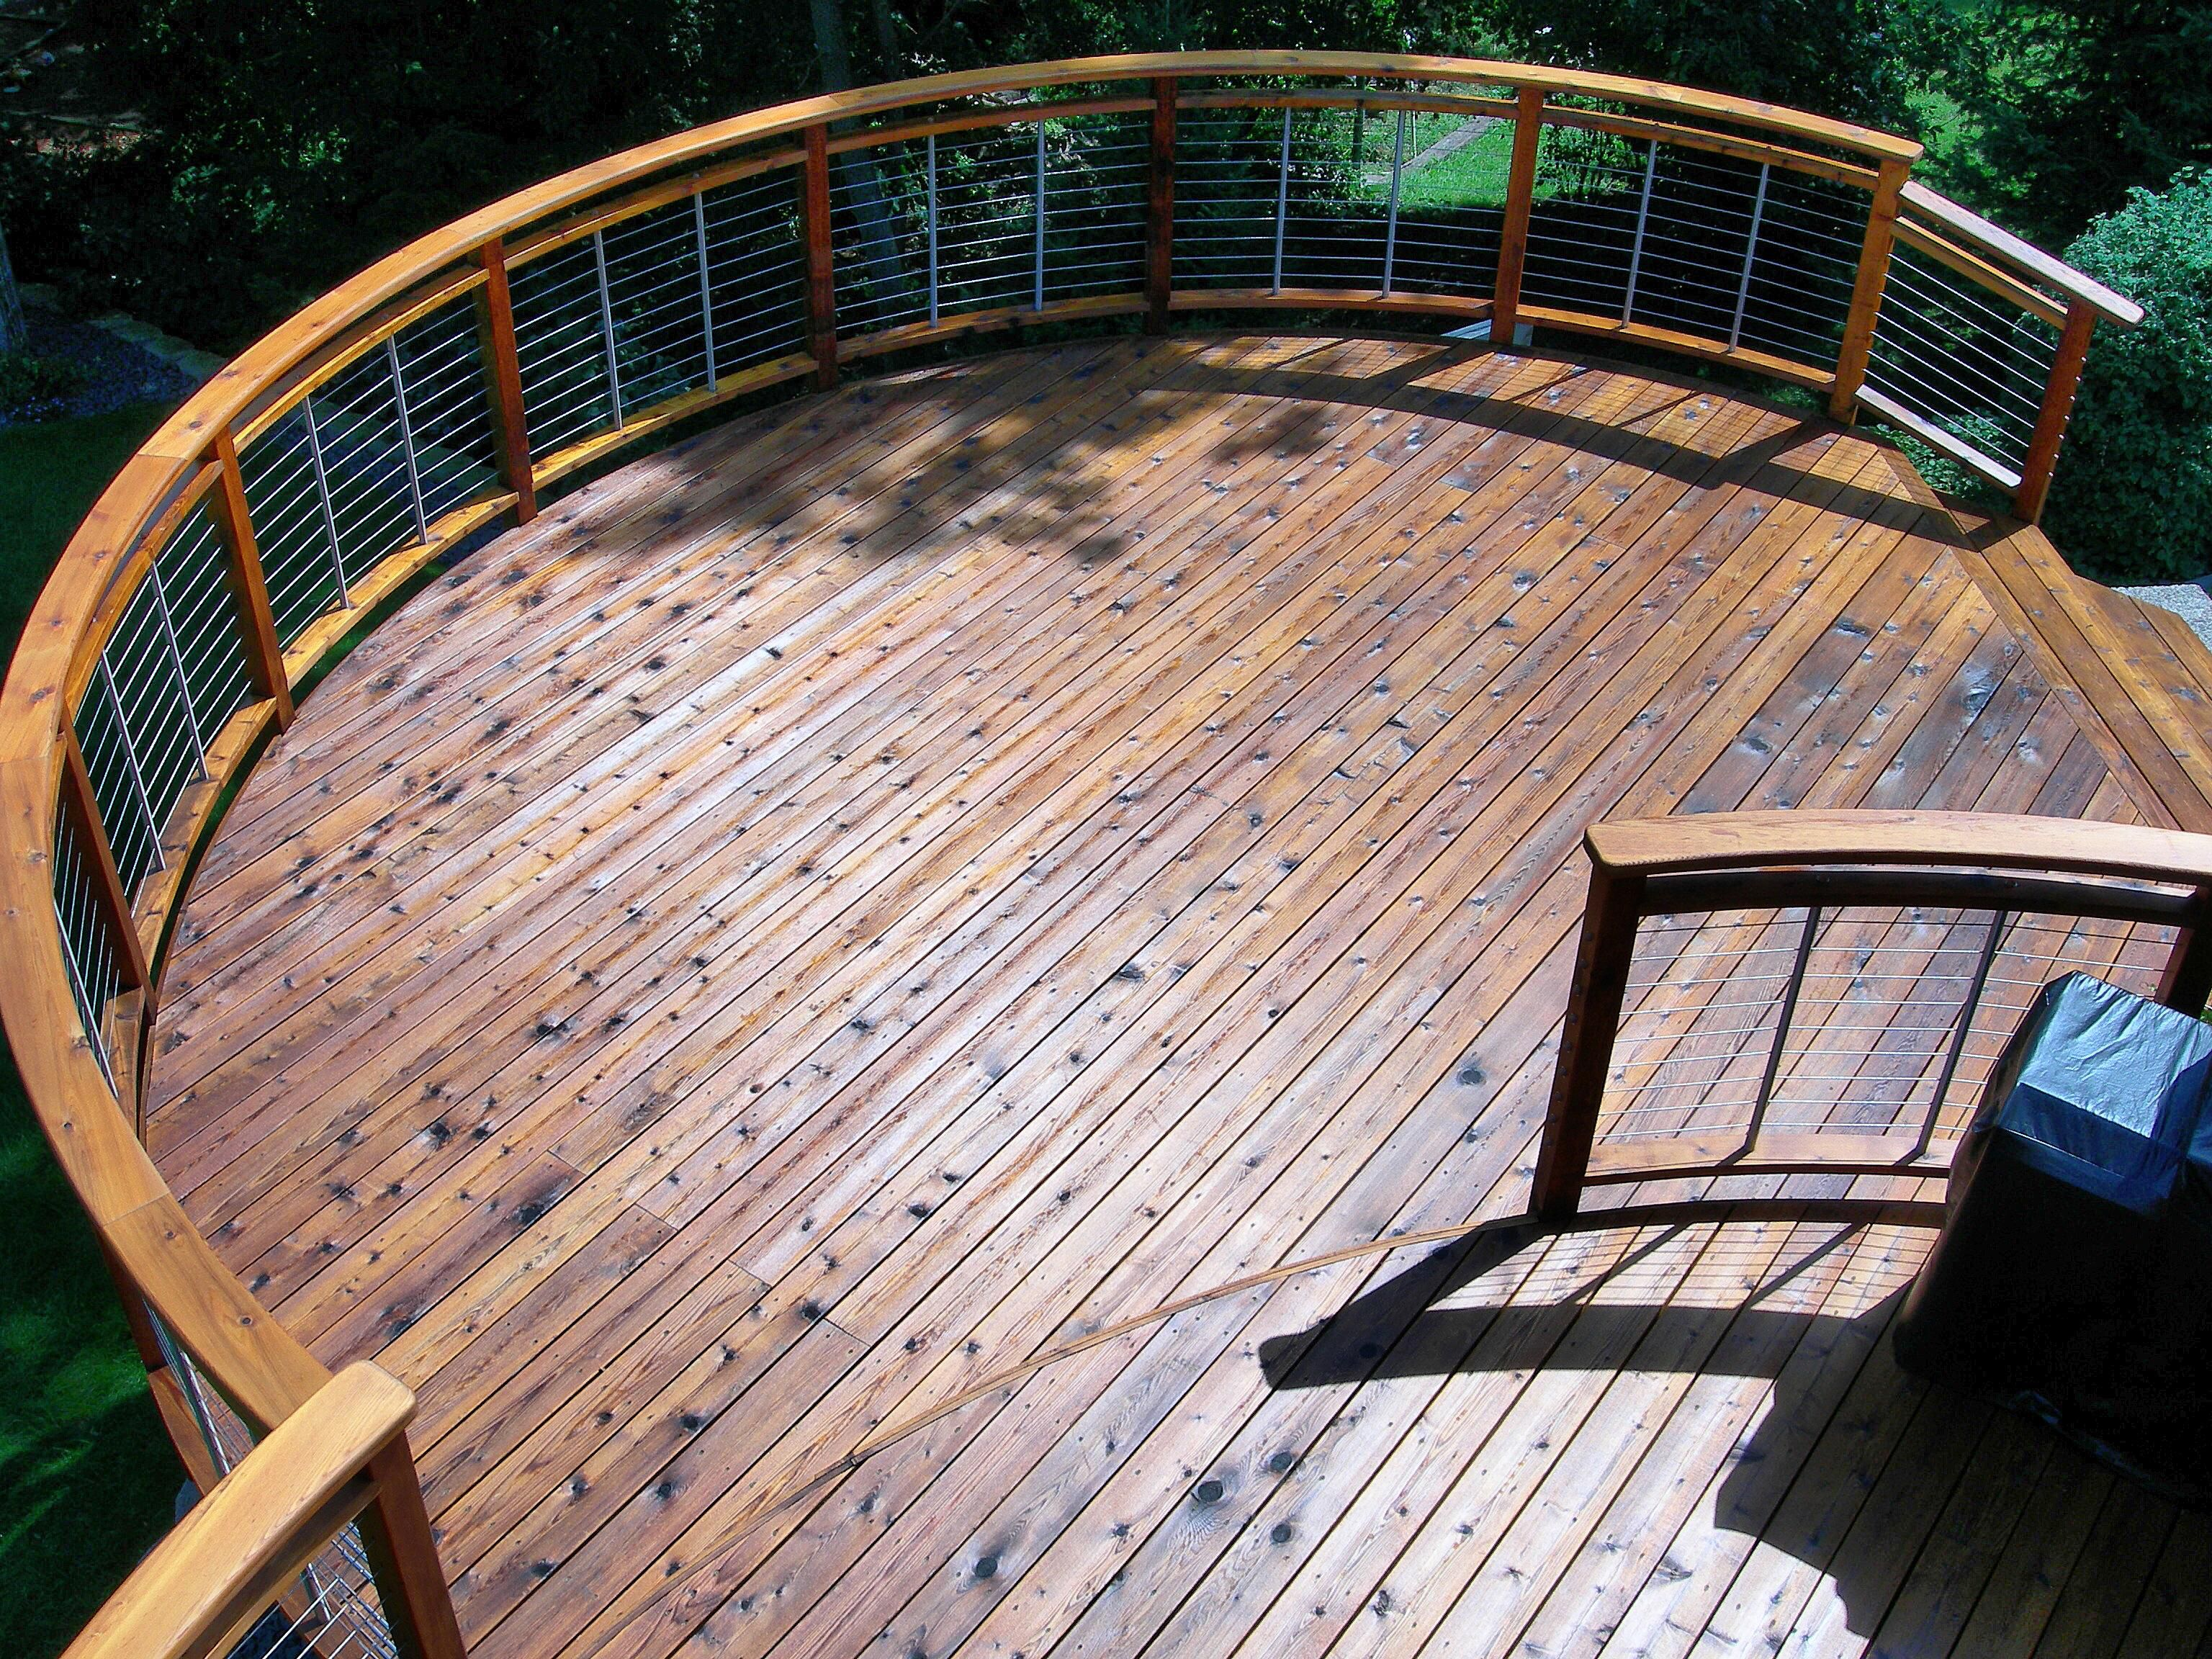 Western Red Cedar As A Deck Material